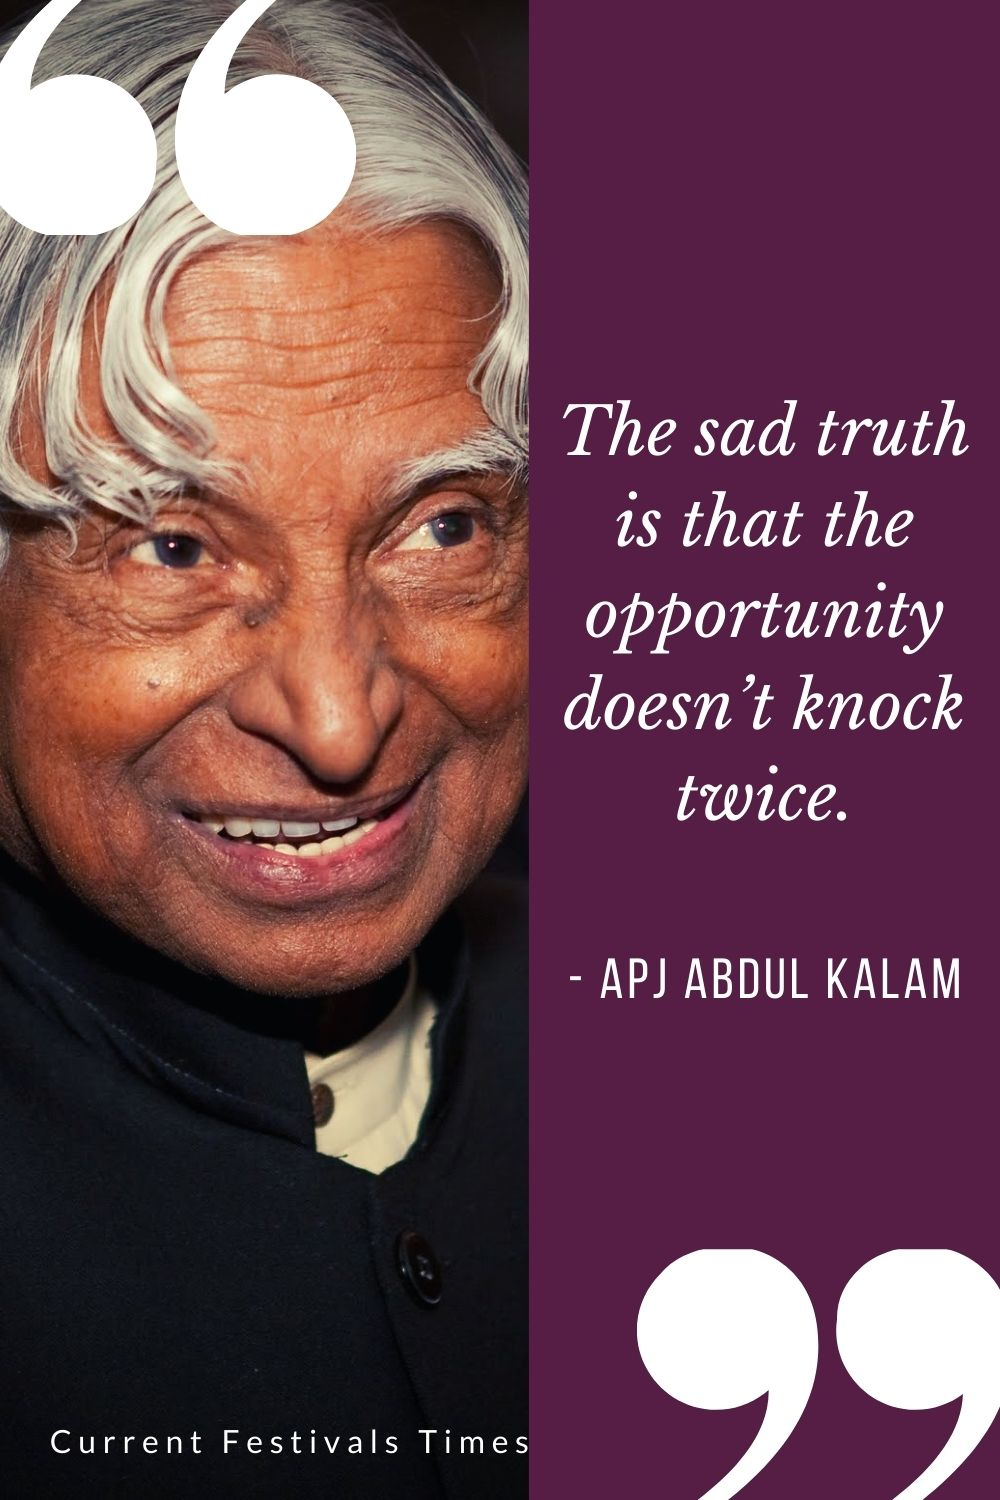 Apj-abdul-kalam-quotes-on-opportunity